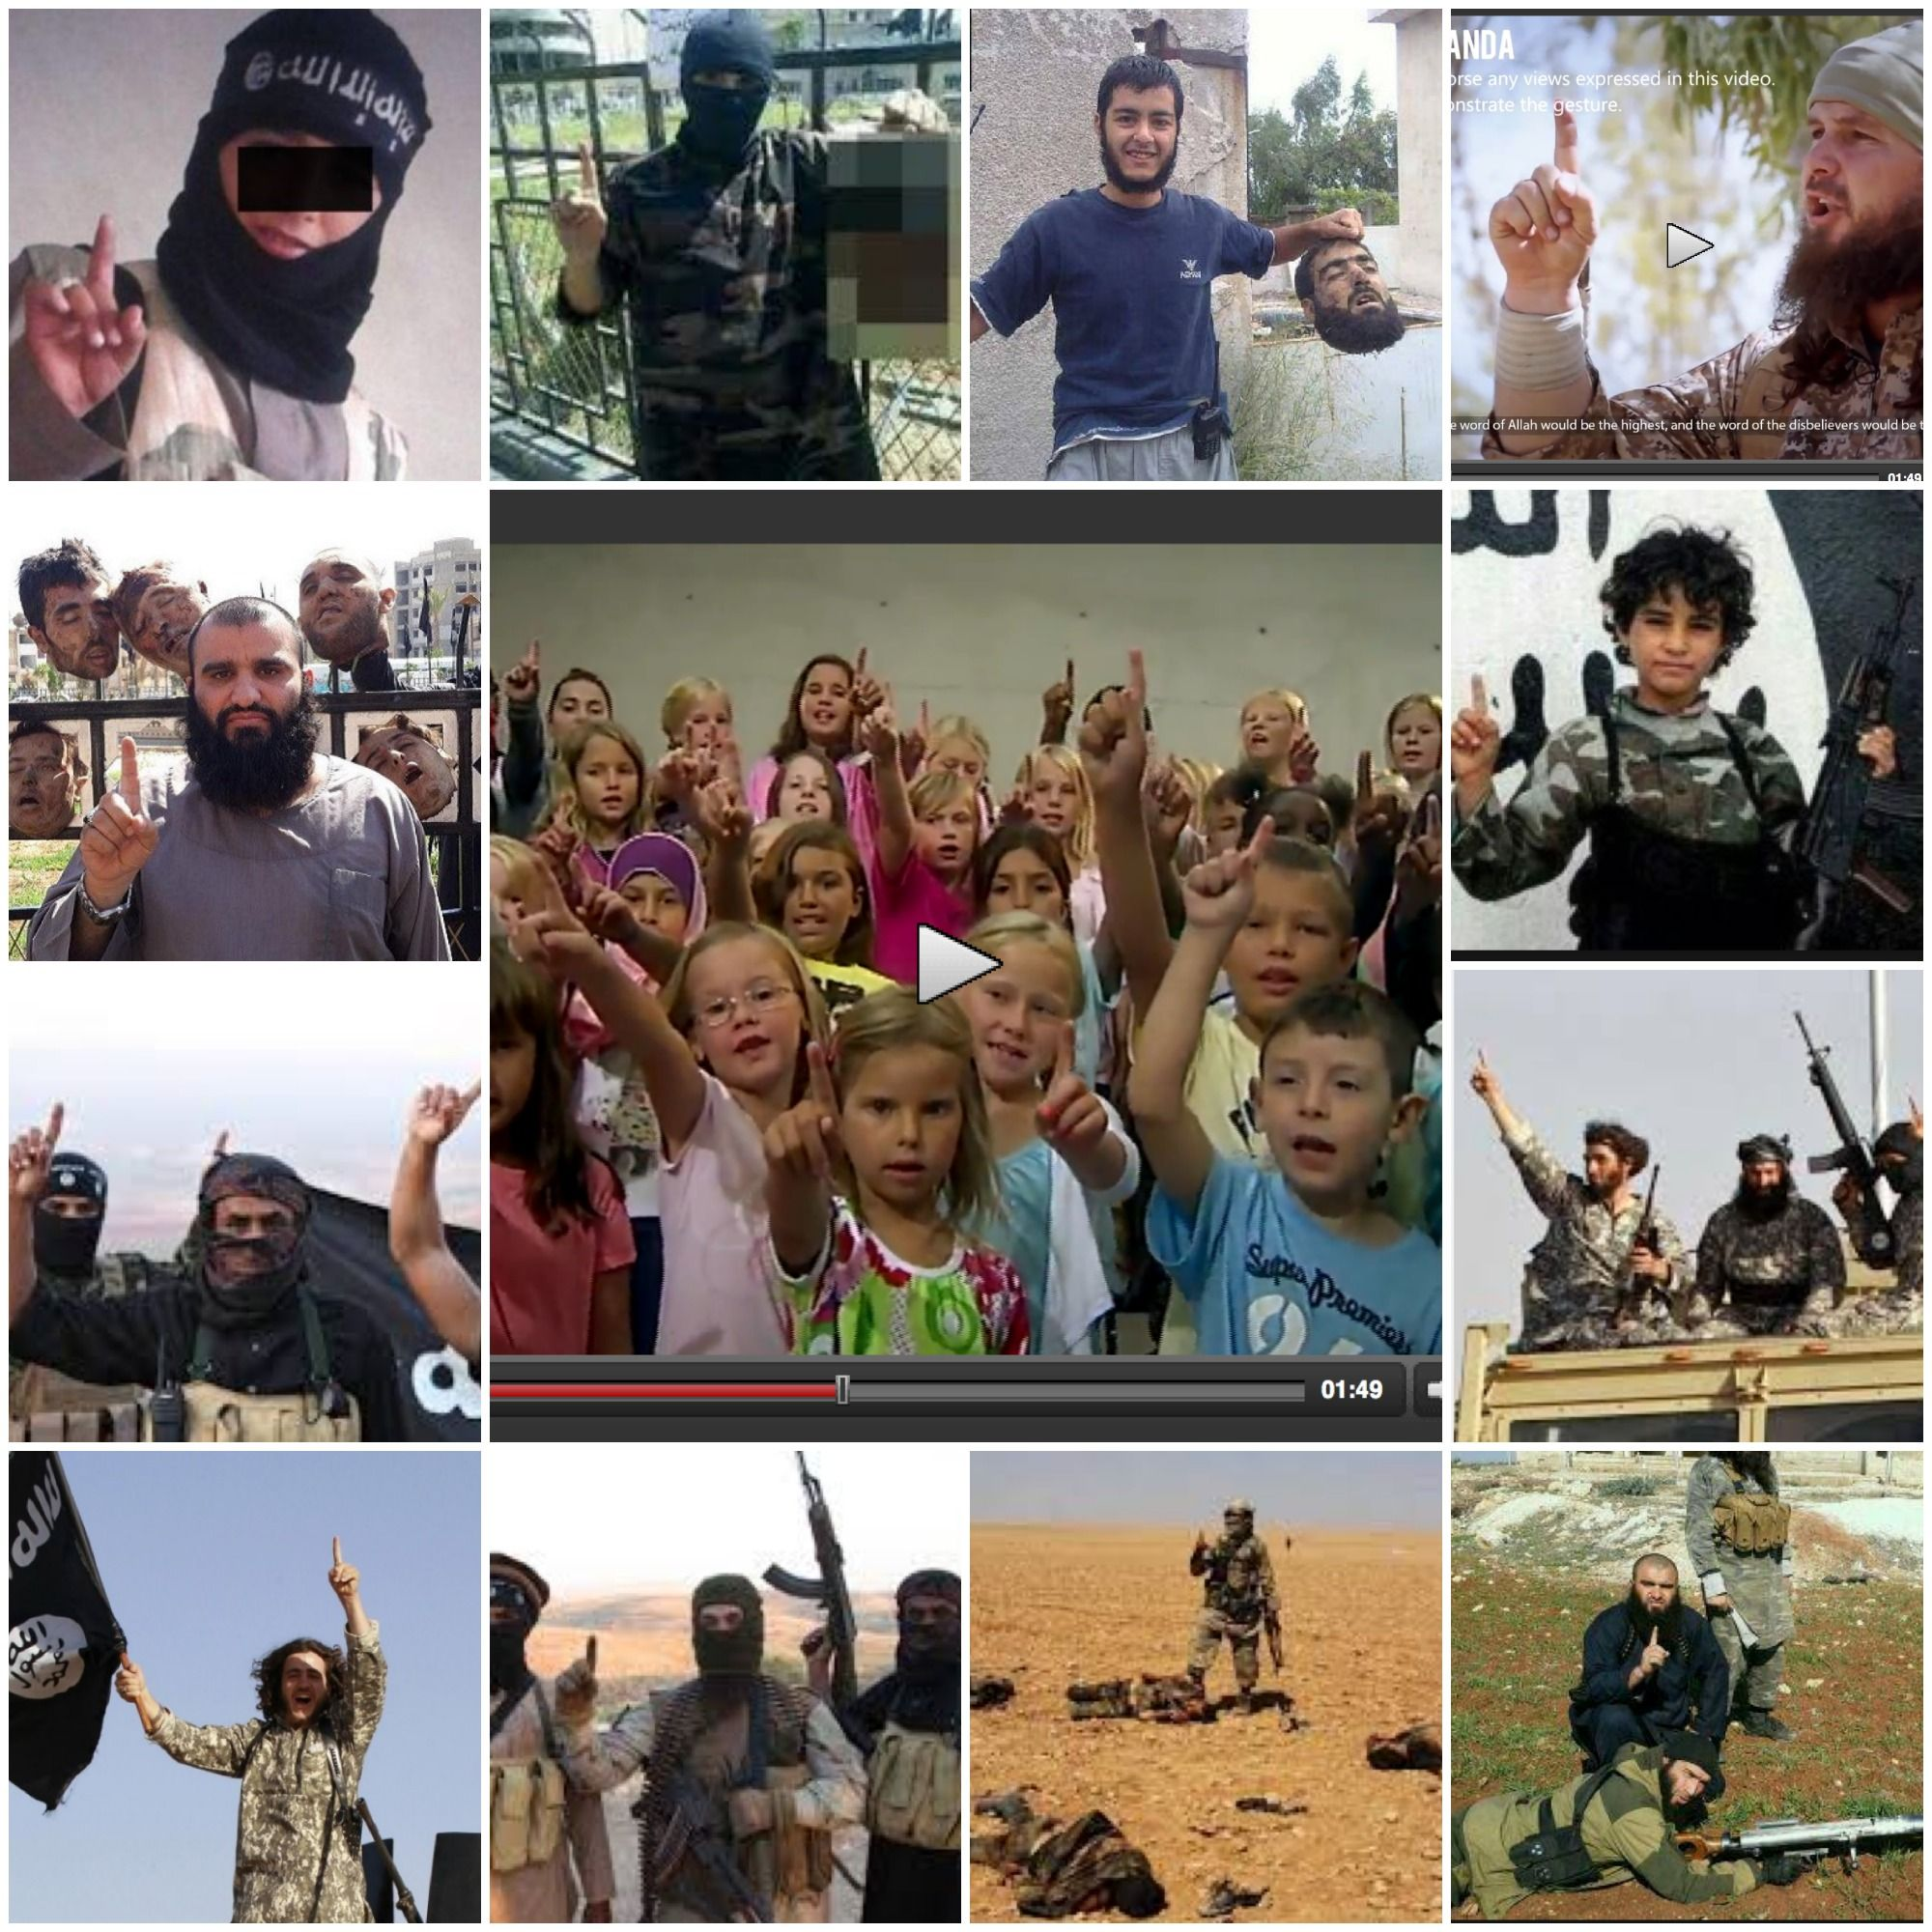 SHOCKING VIDEO: Swedish state TV airs children's program glorifying ISIS ~ Unbelievable & Disgusting!